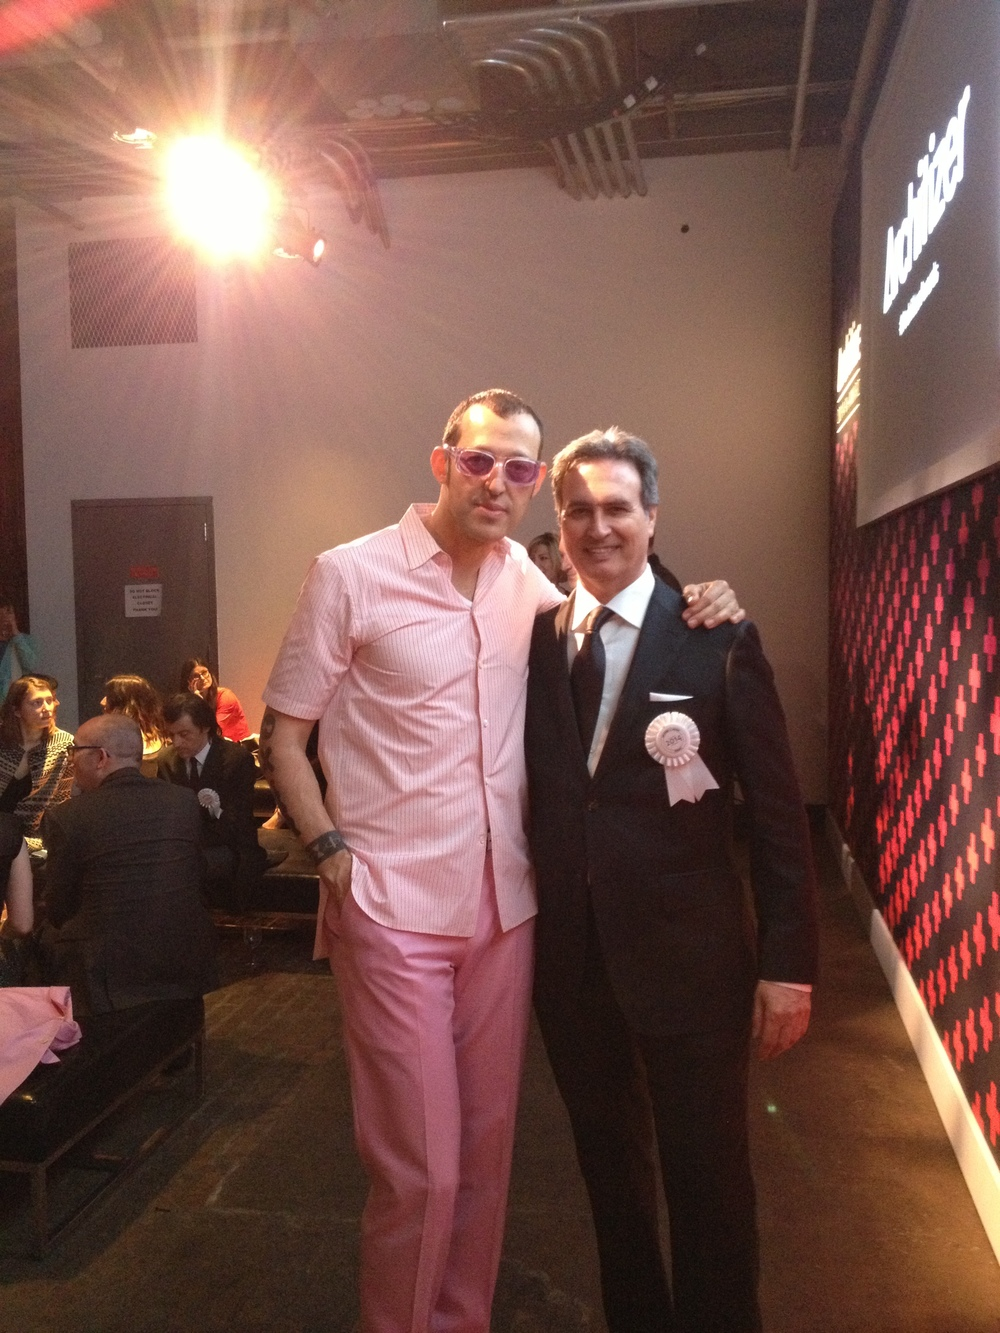 Karim Rashid and Adrian Levin at A+Awards. This is Karim's interpretation of a black tie event - tickles me pink !